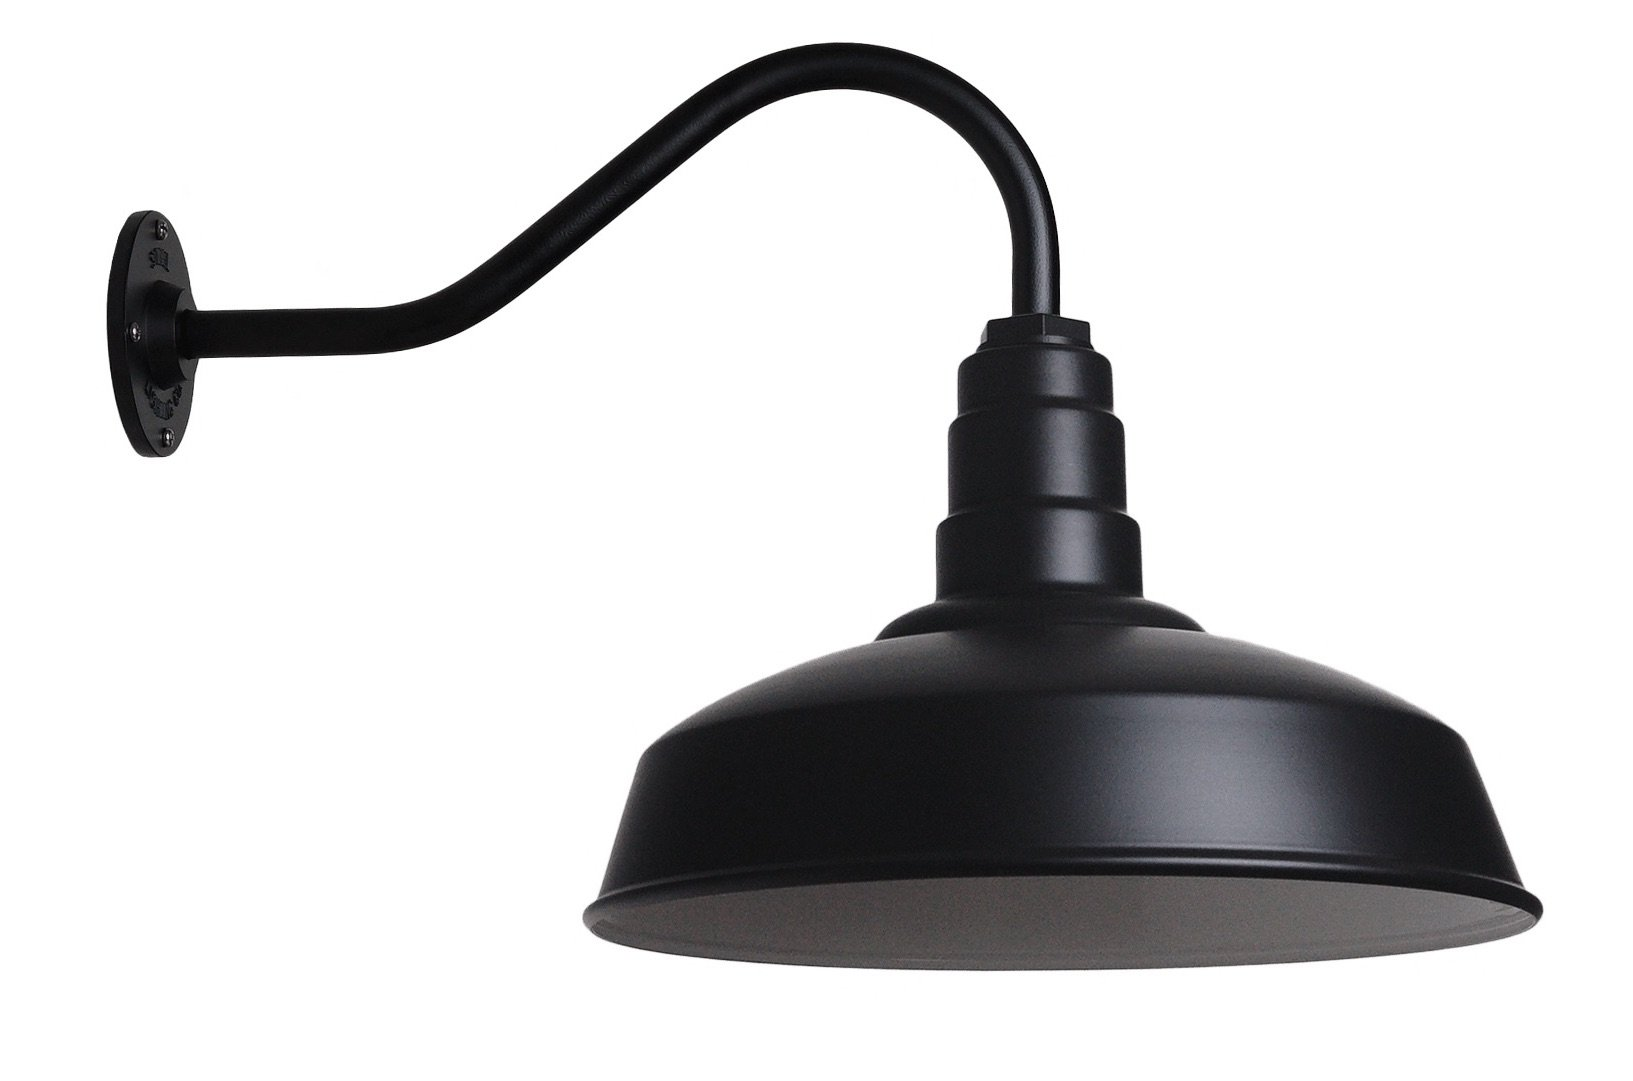 The Gardena Gooseneck Barn Light | Standard Warehouse Steel Dome on a Gooseneck | Barn Lighting and Farmhouse Lighting | Made in America (16'' Gooseneck, Matte Black) by Steel Lighting Co.